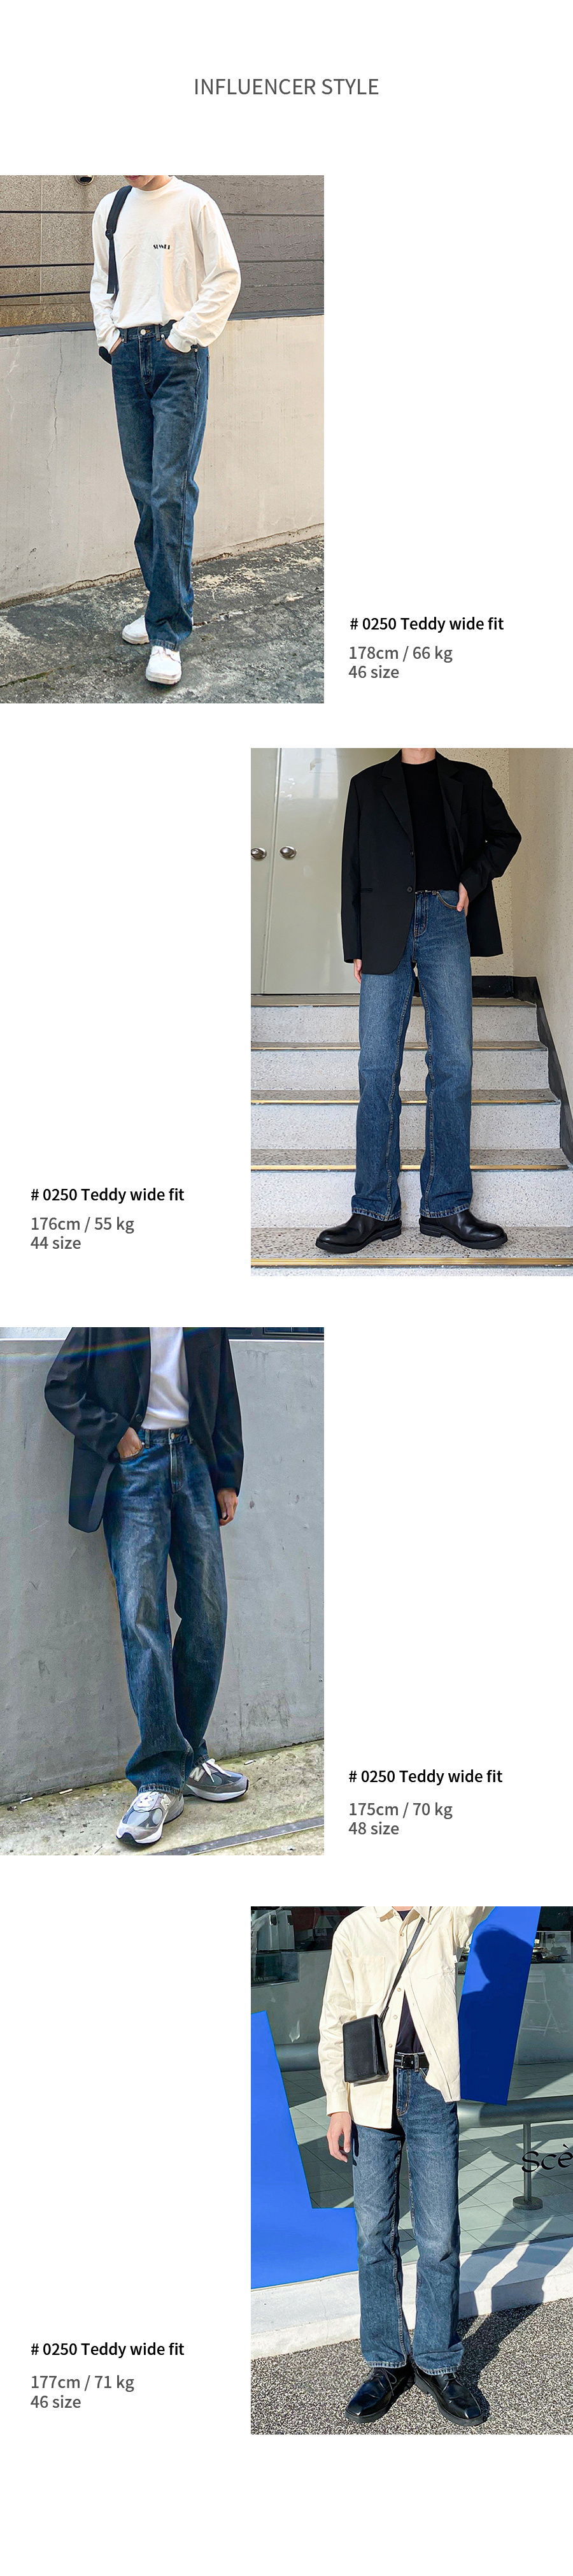 페이탈리즘(FATALISM) #0250 Teddy wide fit